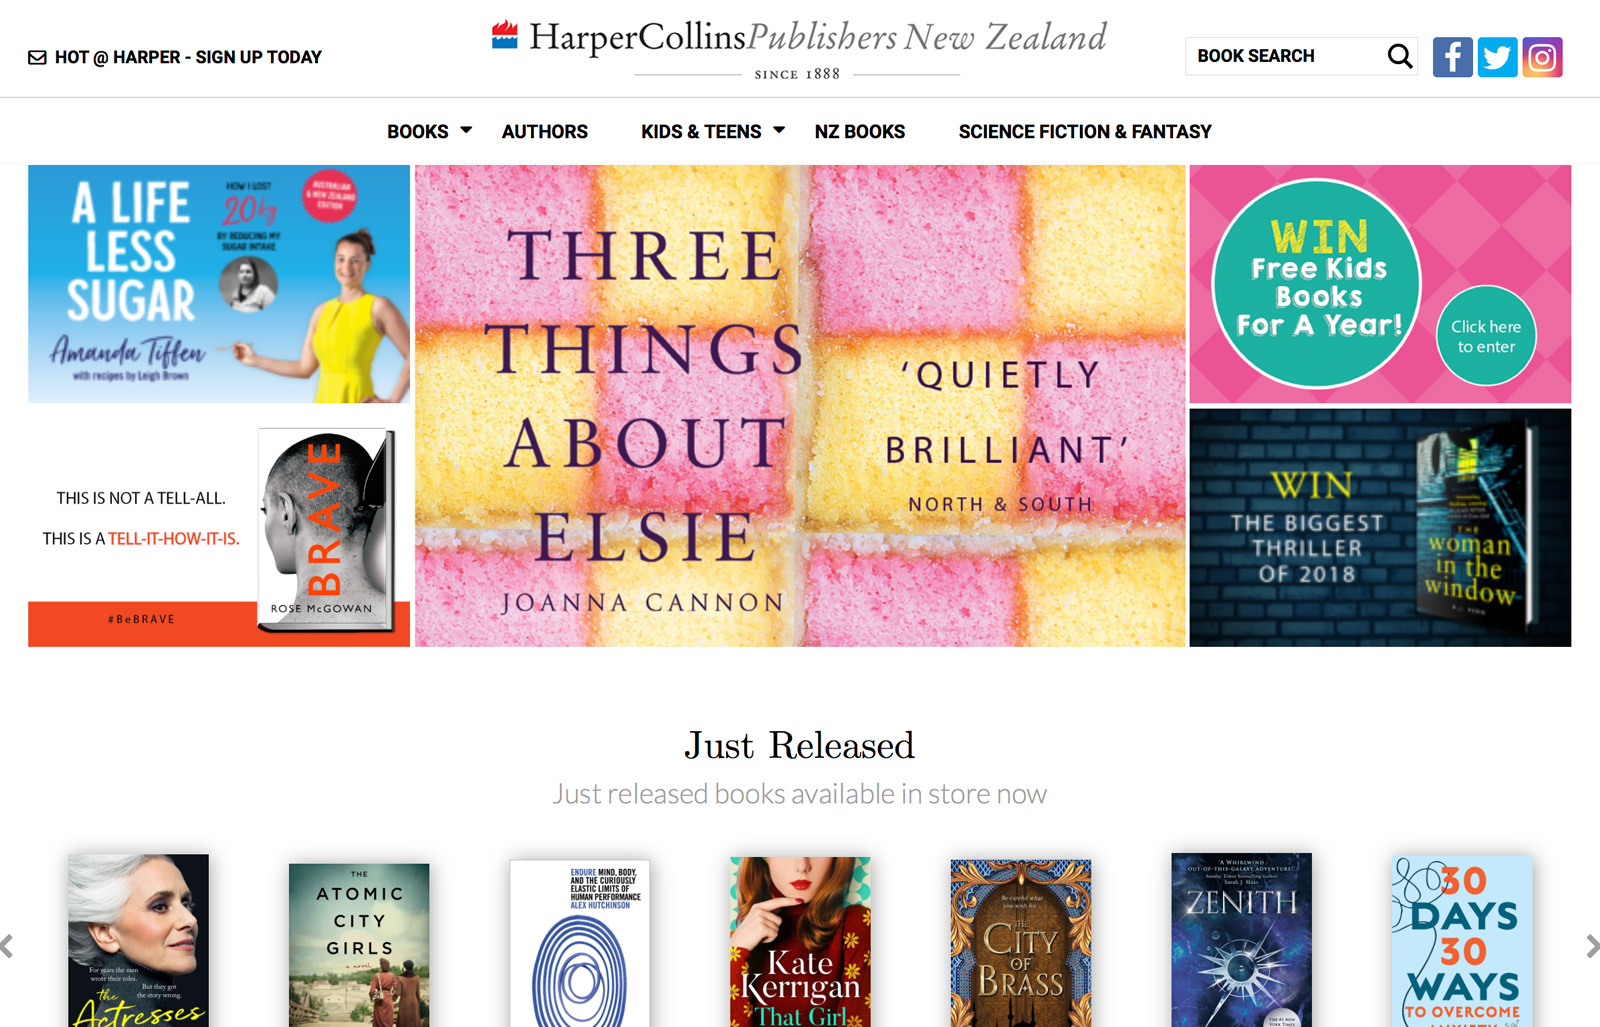 HarperCollins NZ are striding forward with a new site launch following in the footsteps of their sister companies in the USA and UK.